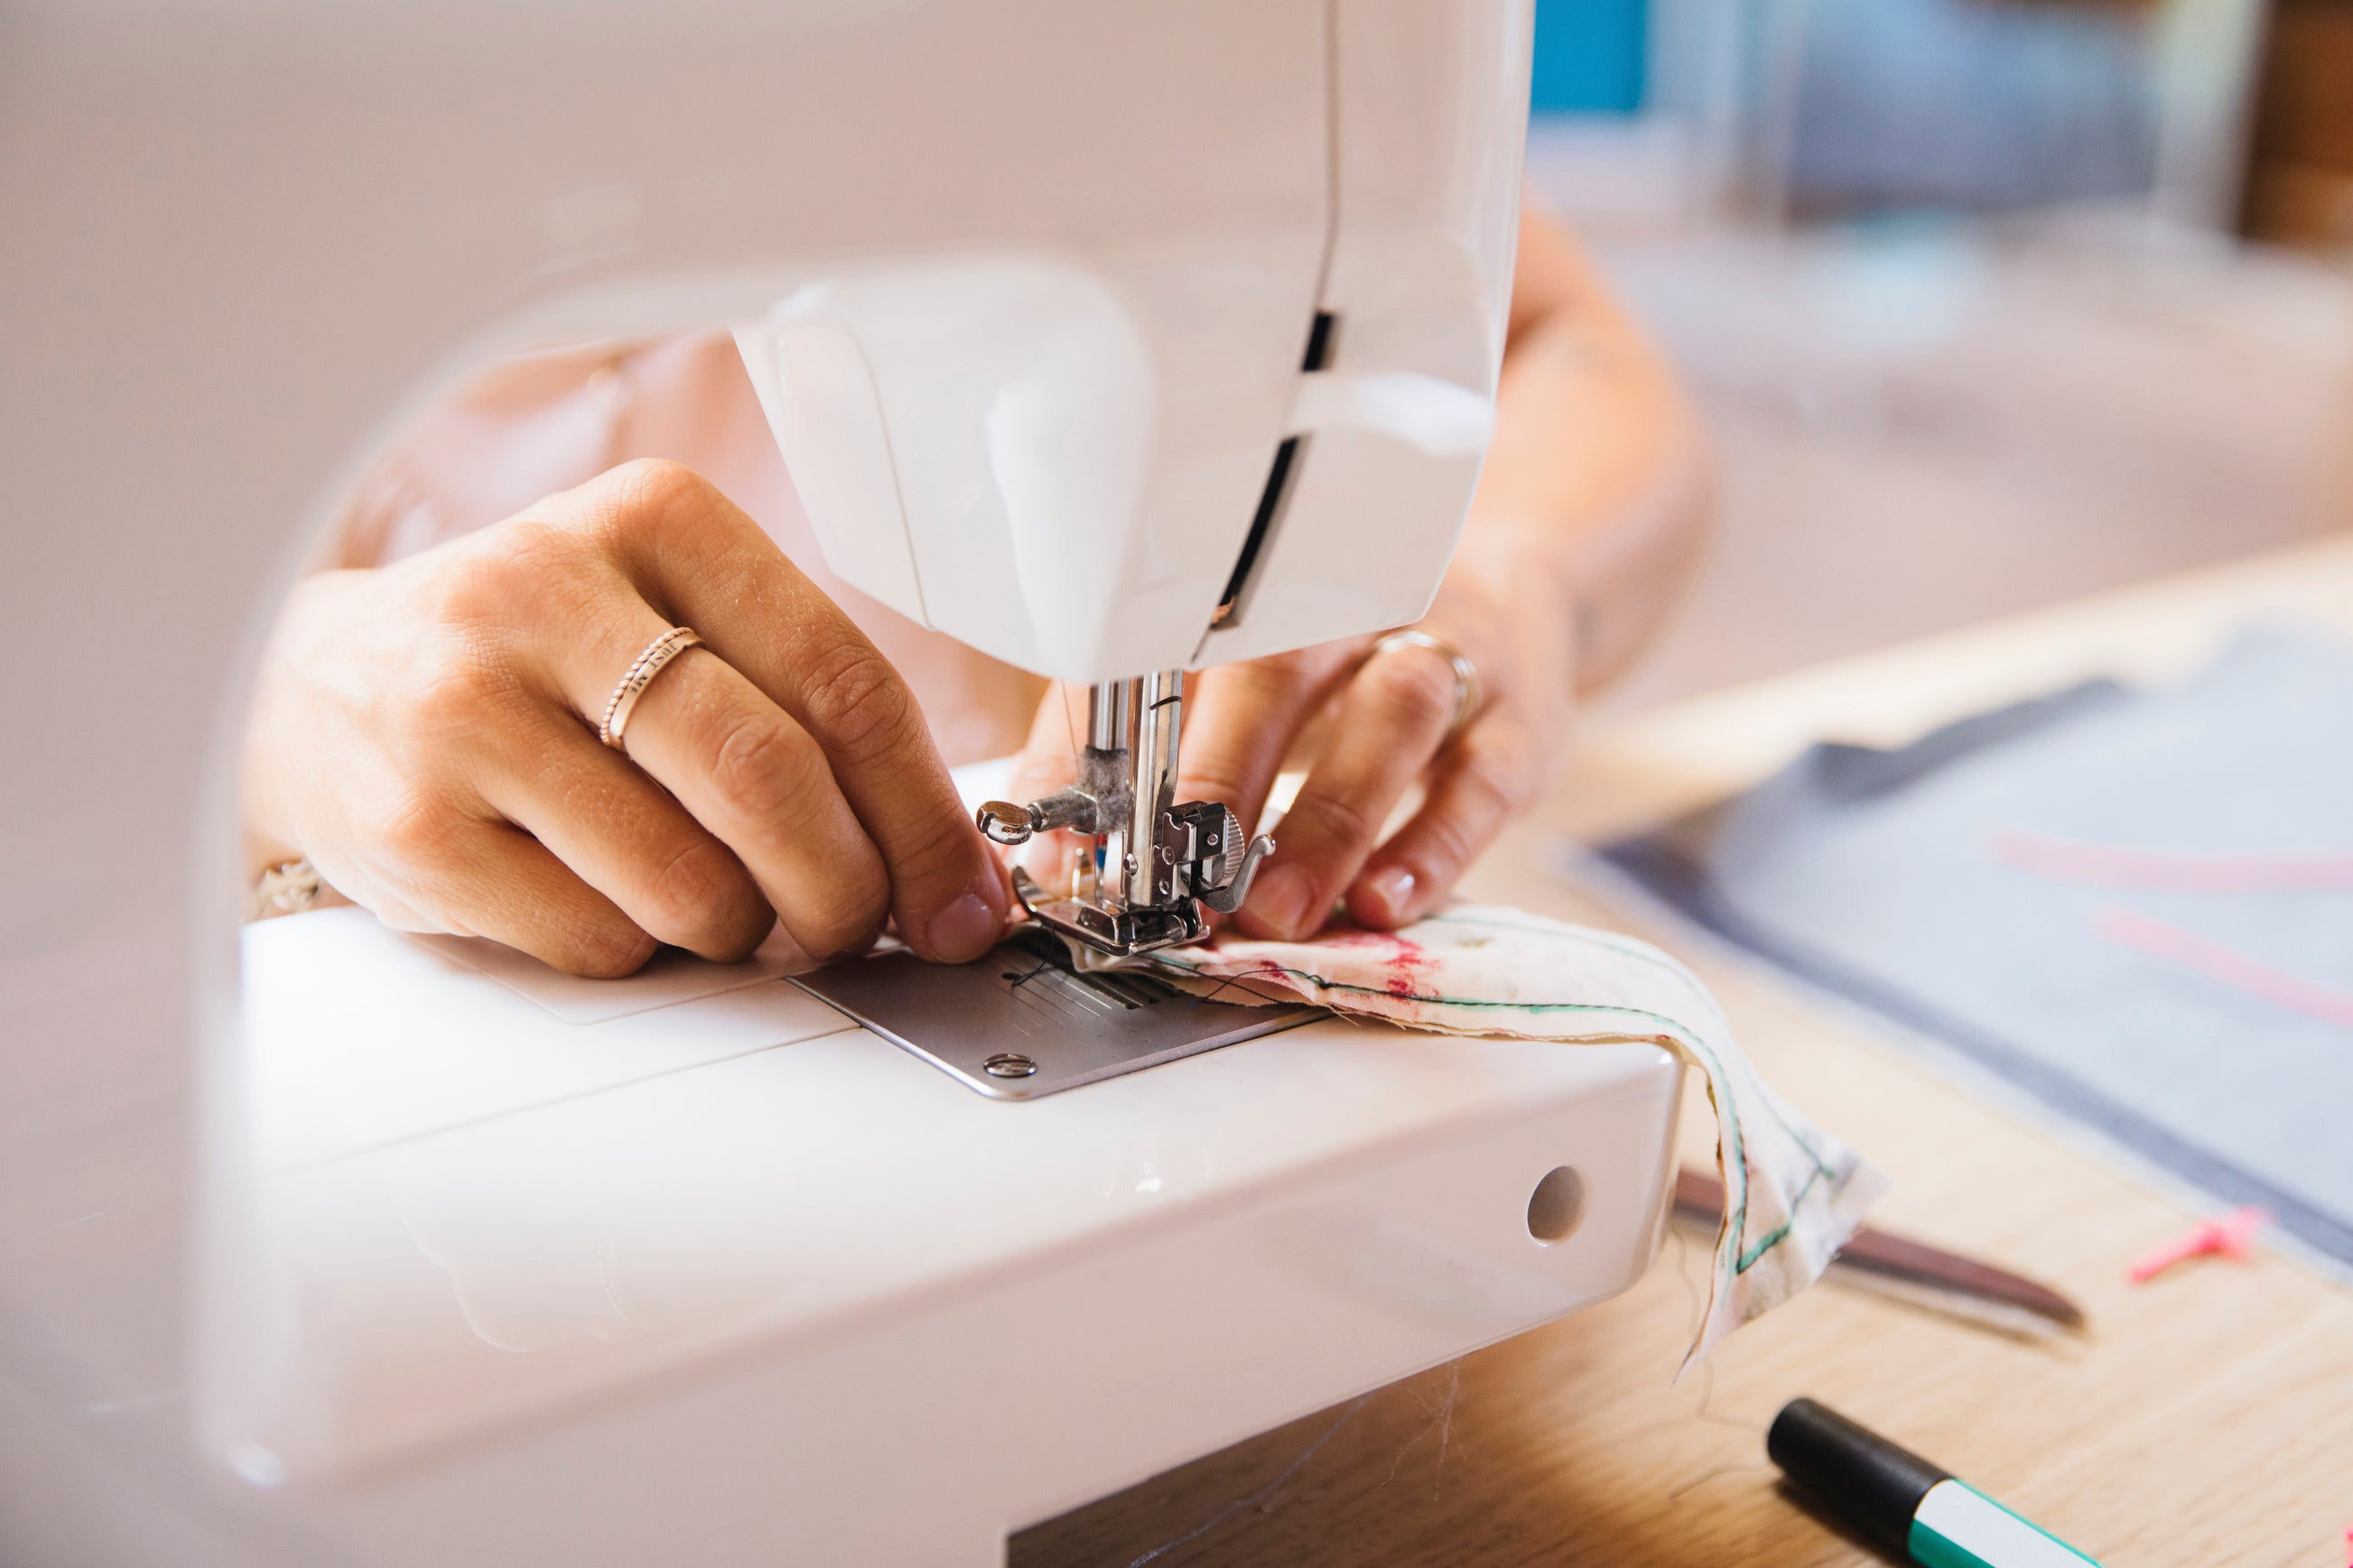 Close up of female hands using a sewing machine